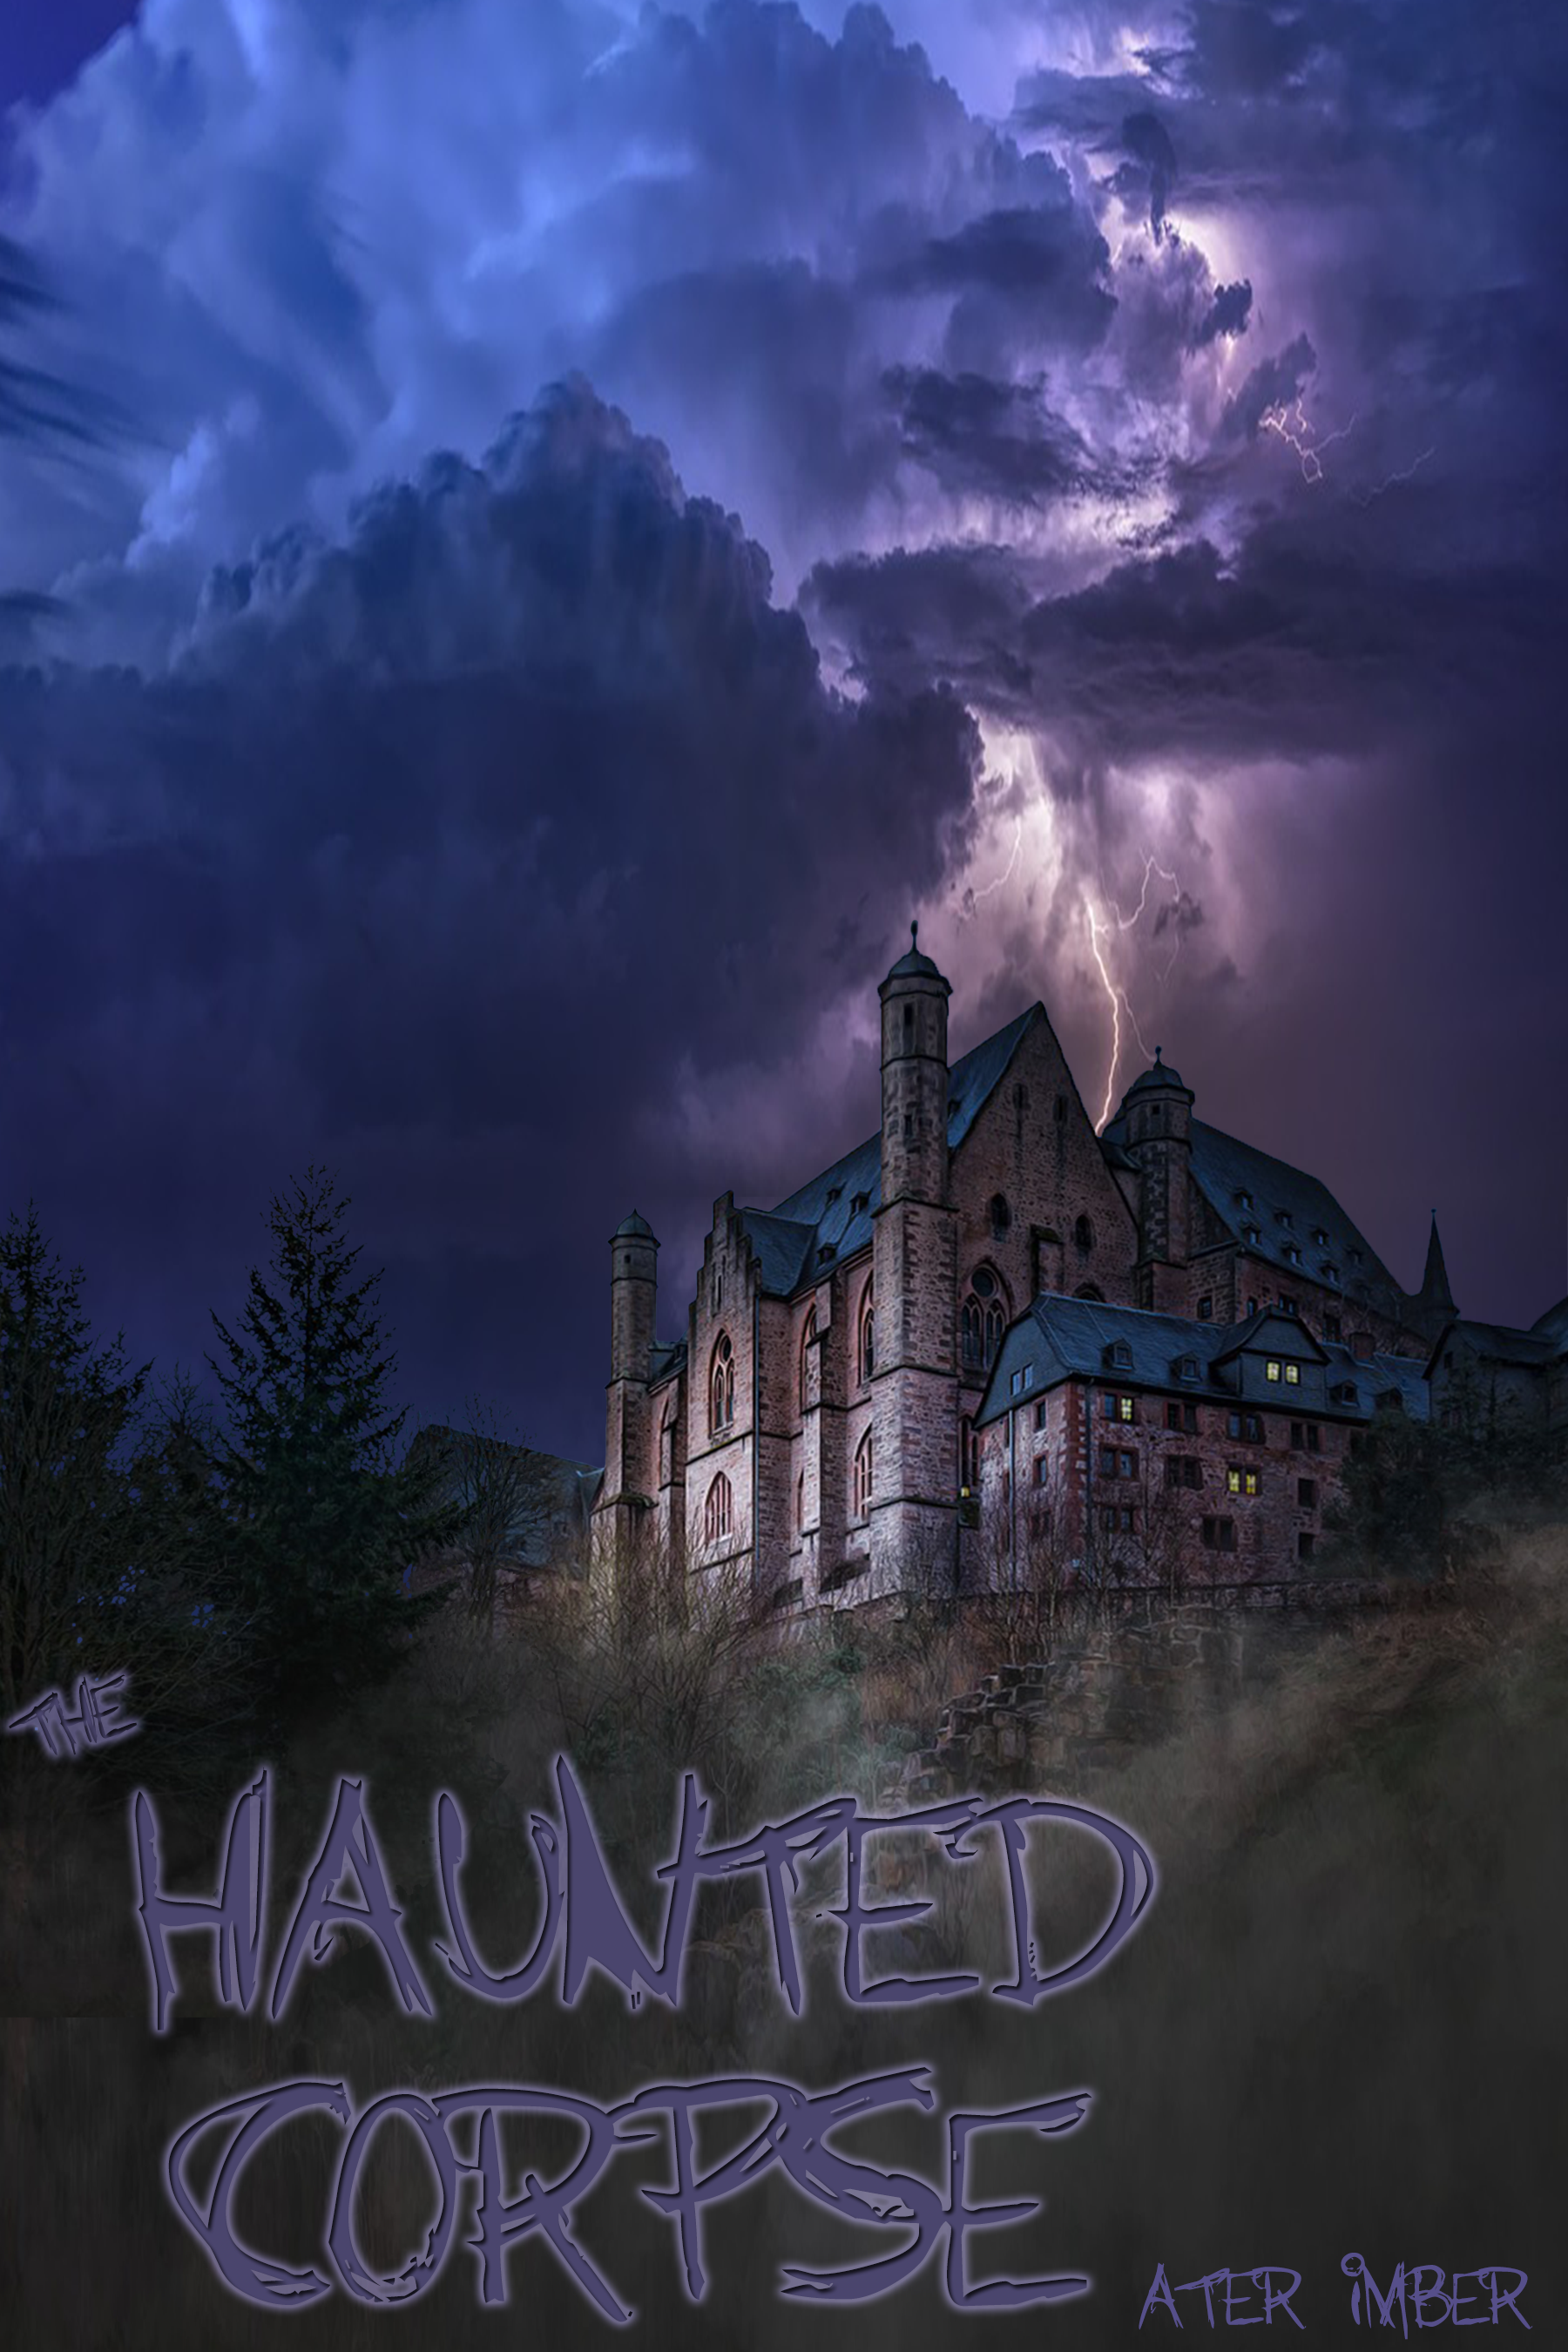 The Haunted Corpse Cover